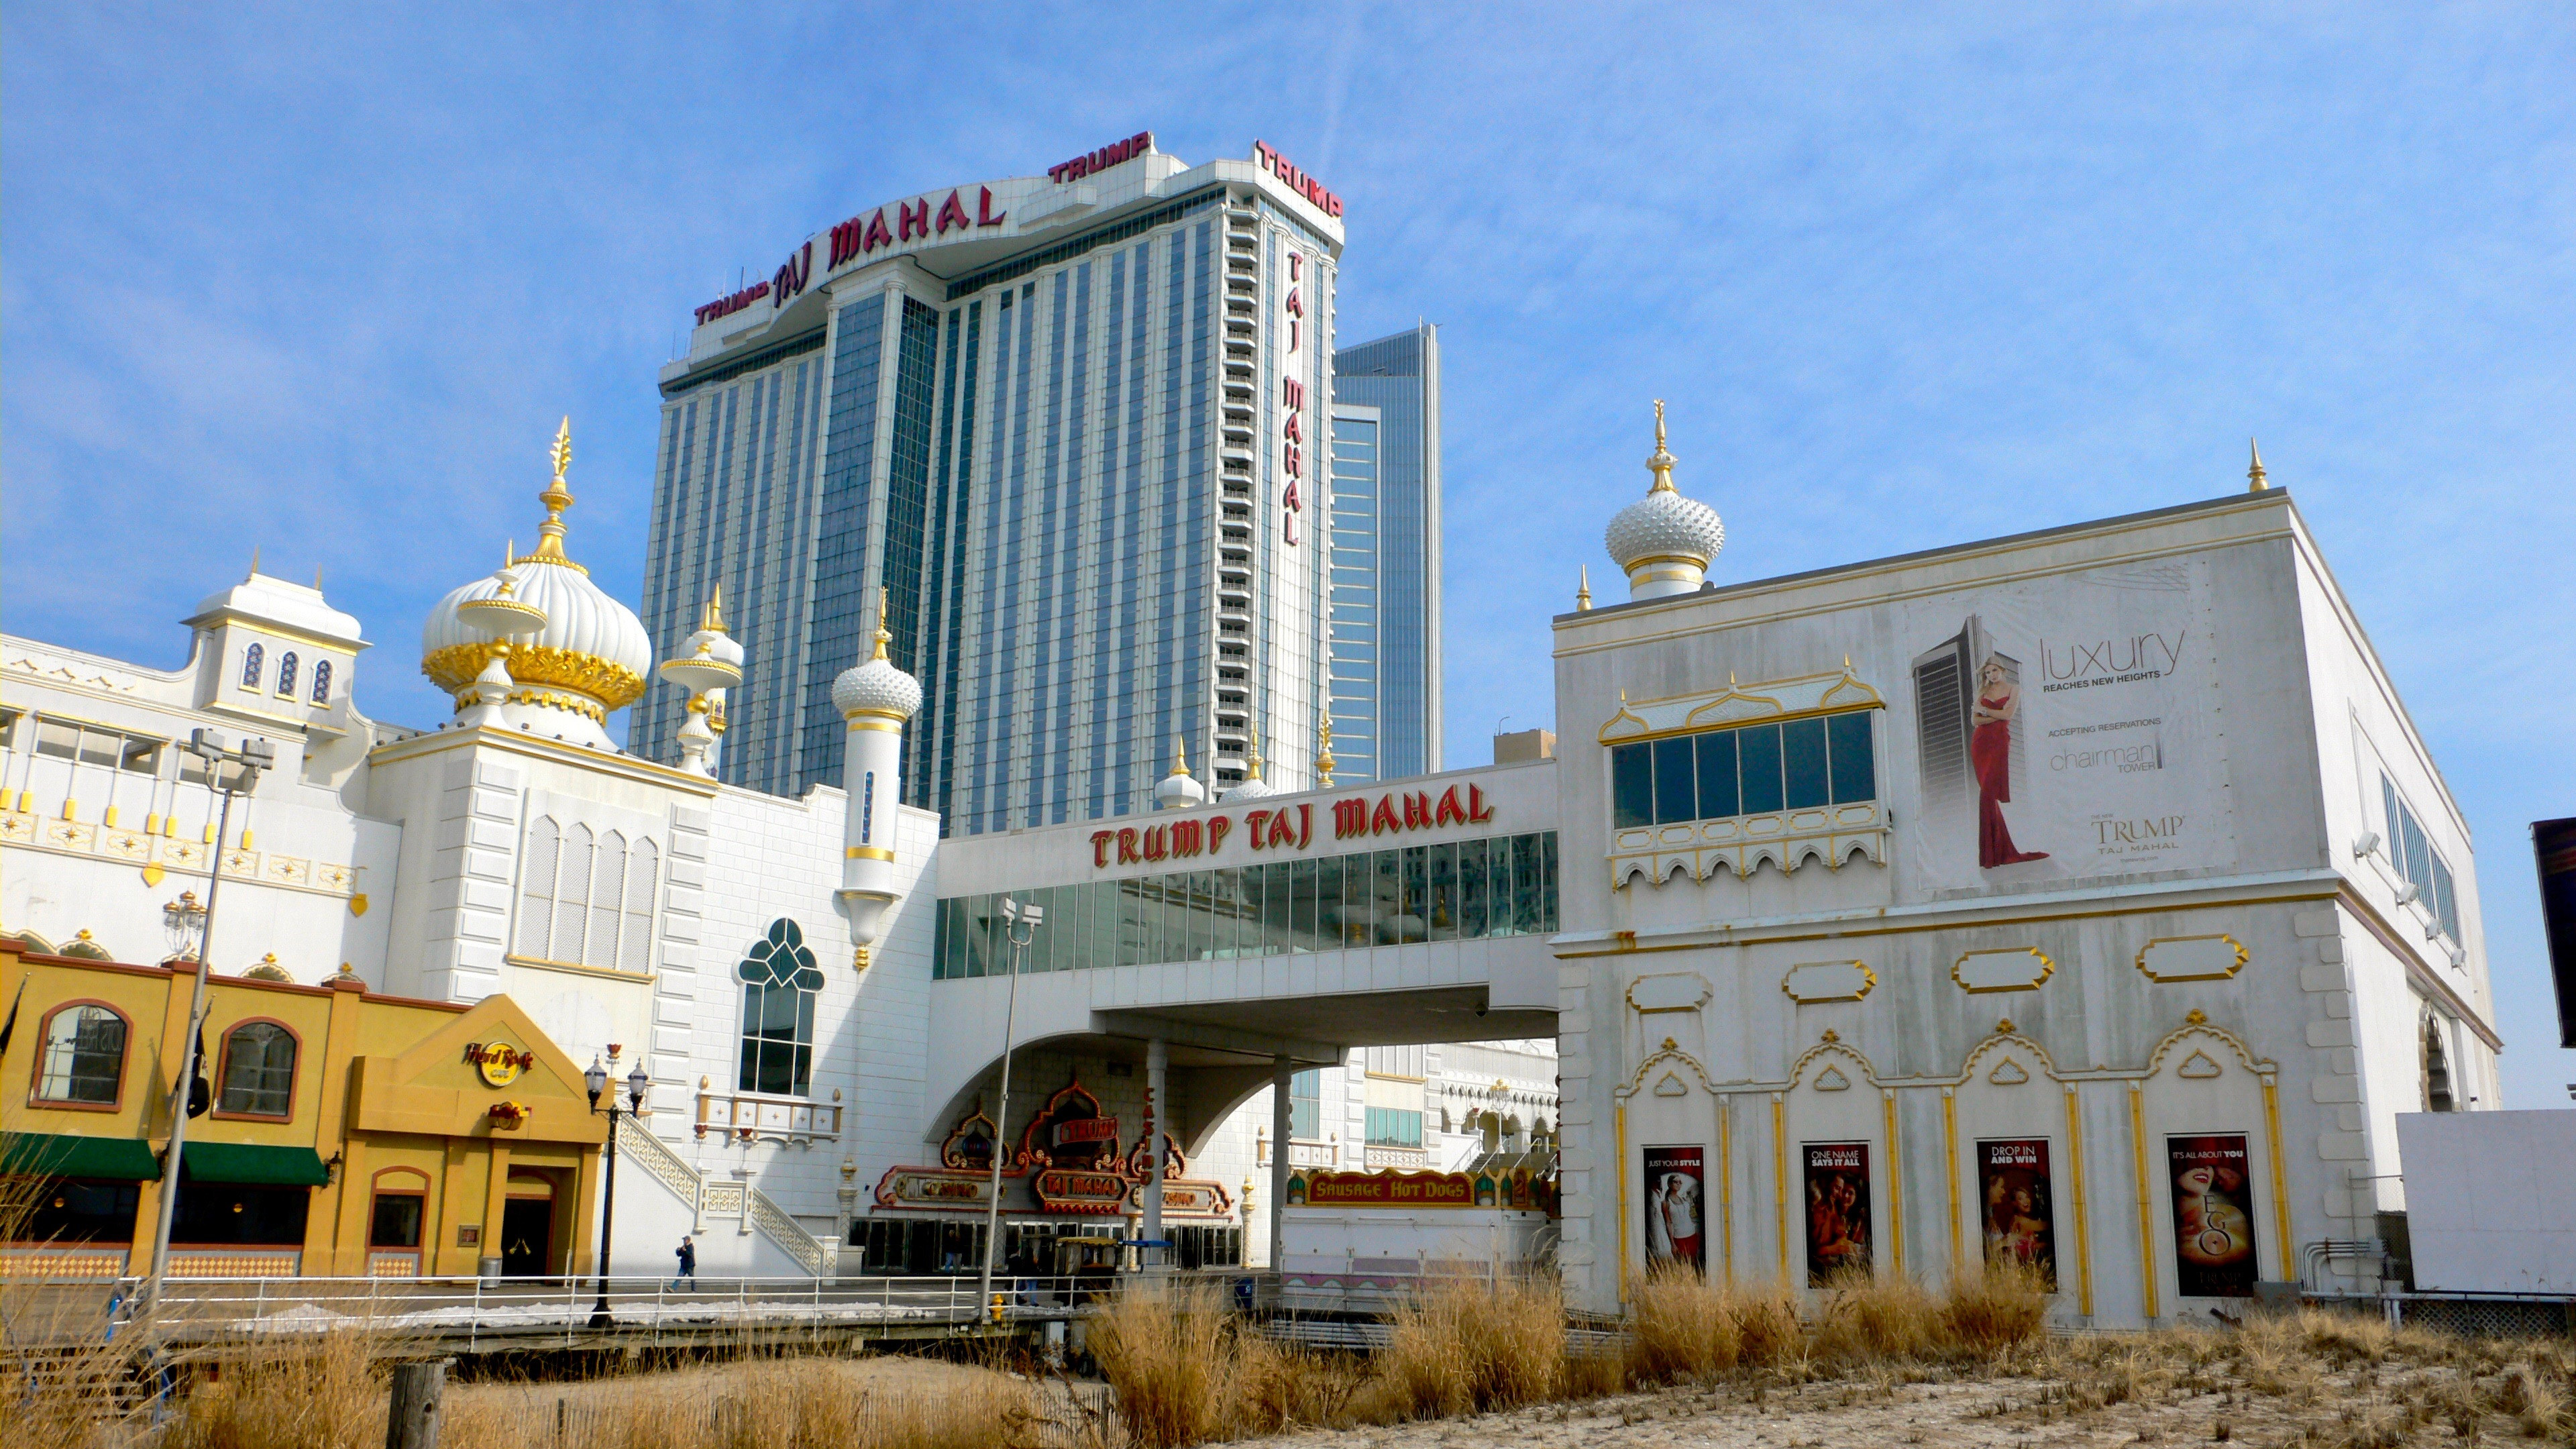 Seminole Tribe working hard to rid new casino of Donald Trump's influence